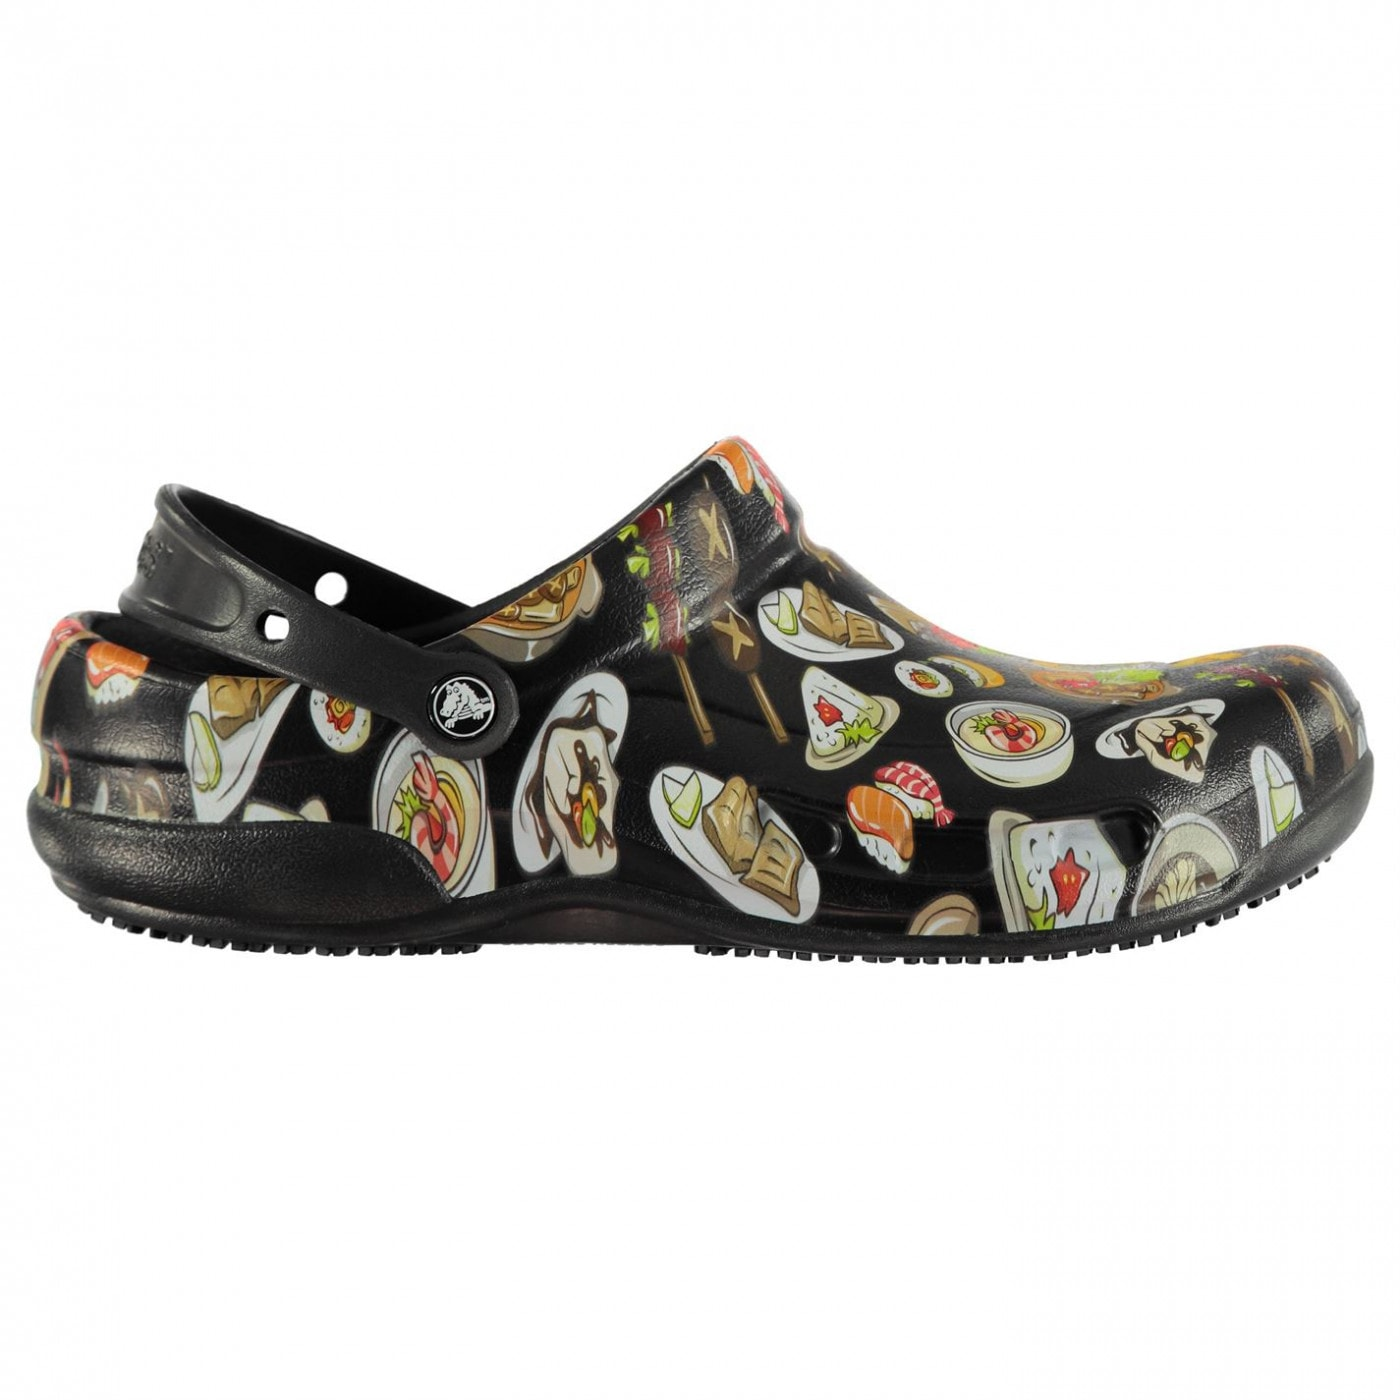 Crocs Bistro Graphic Mens Clogs